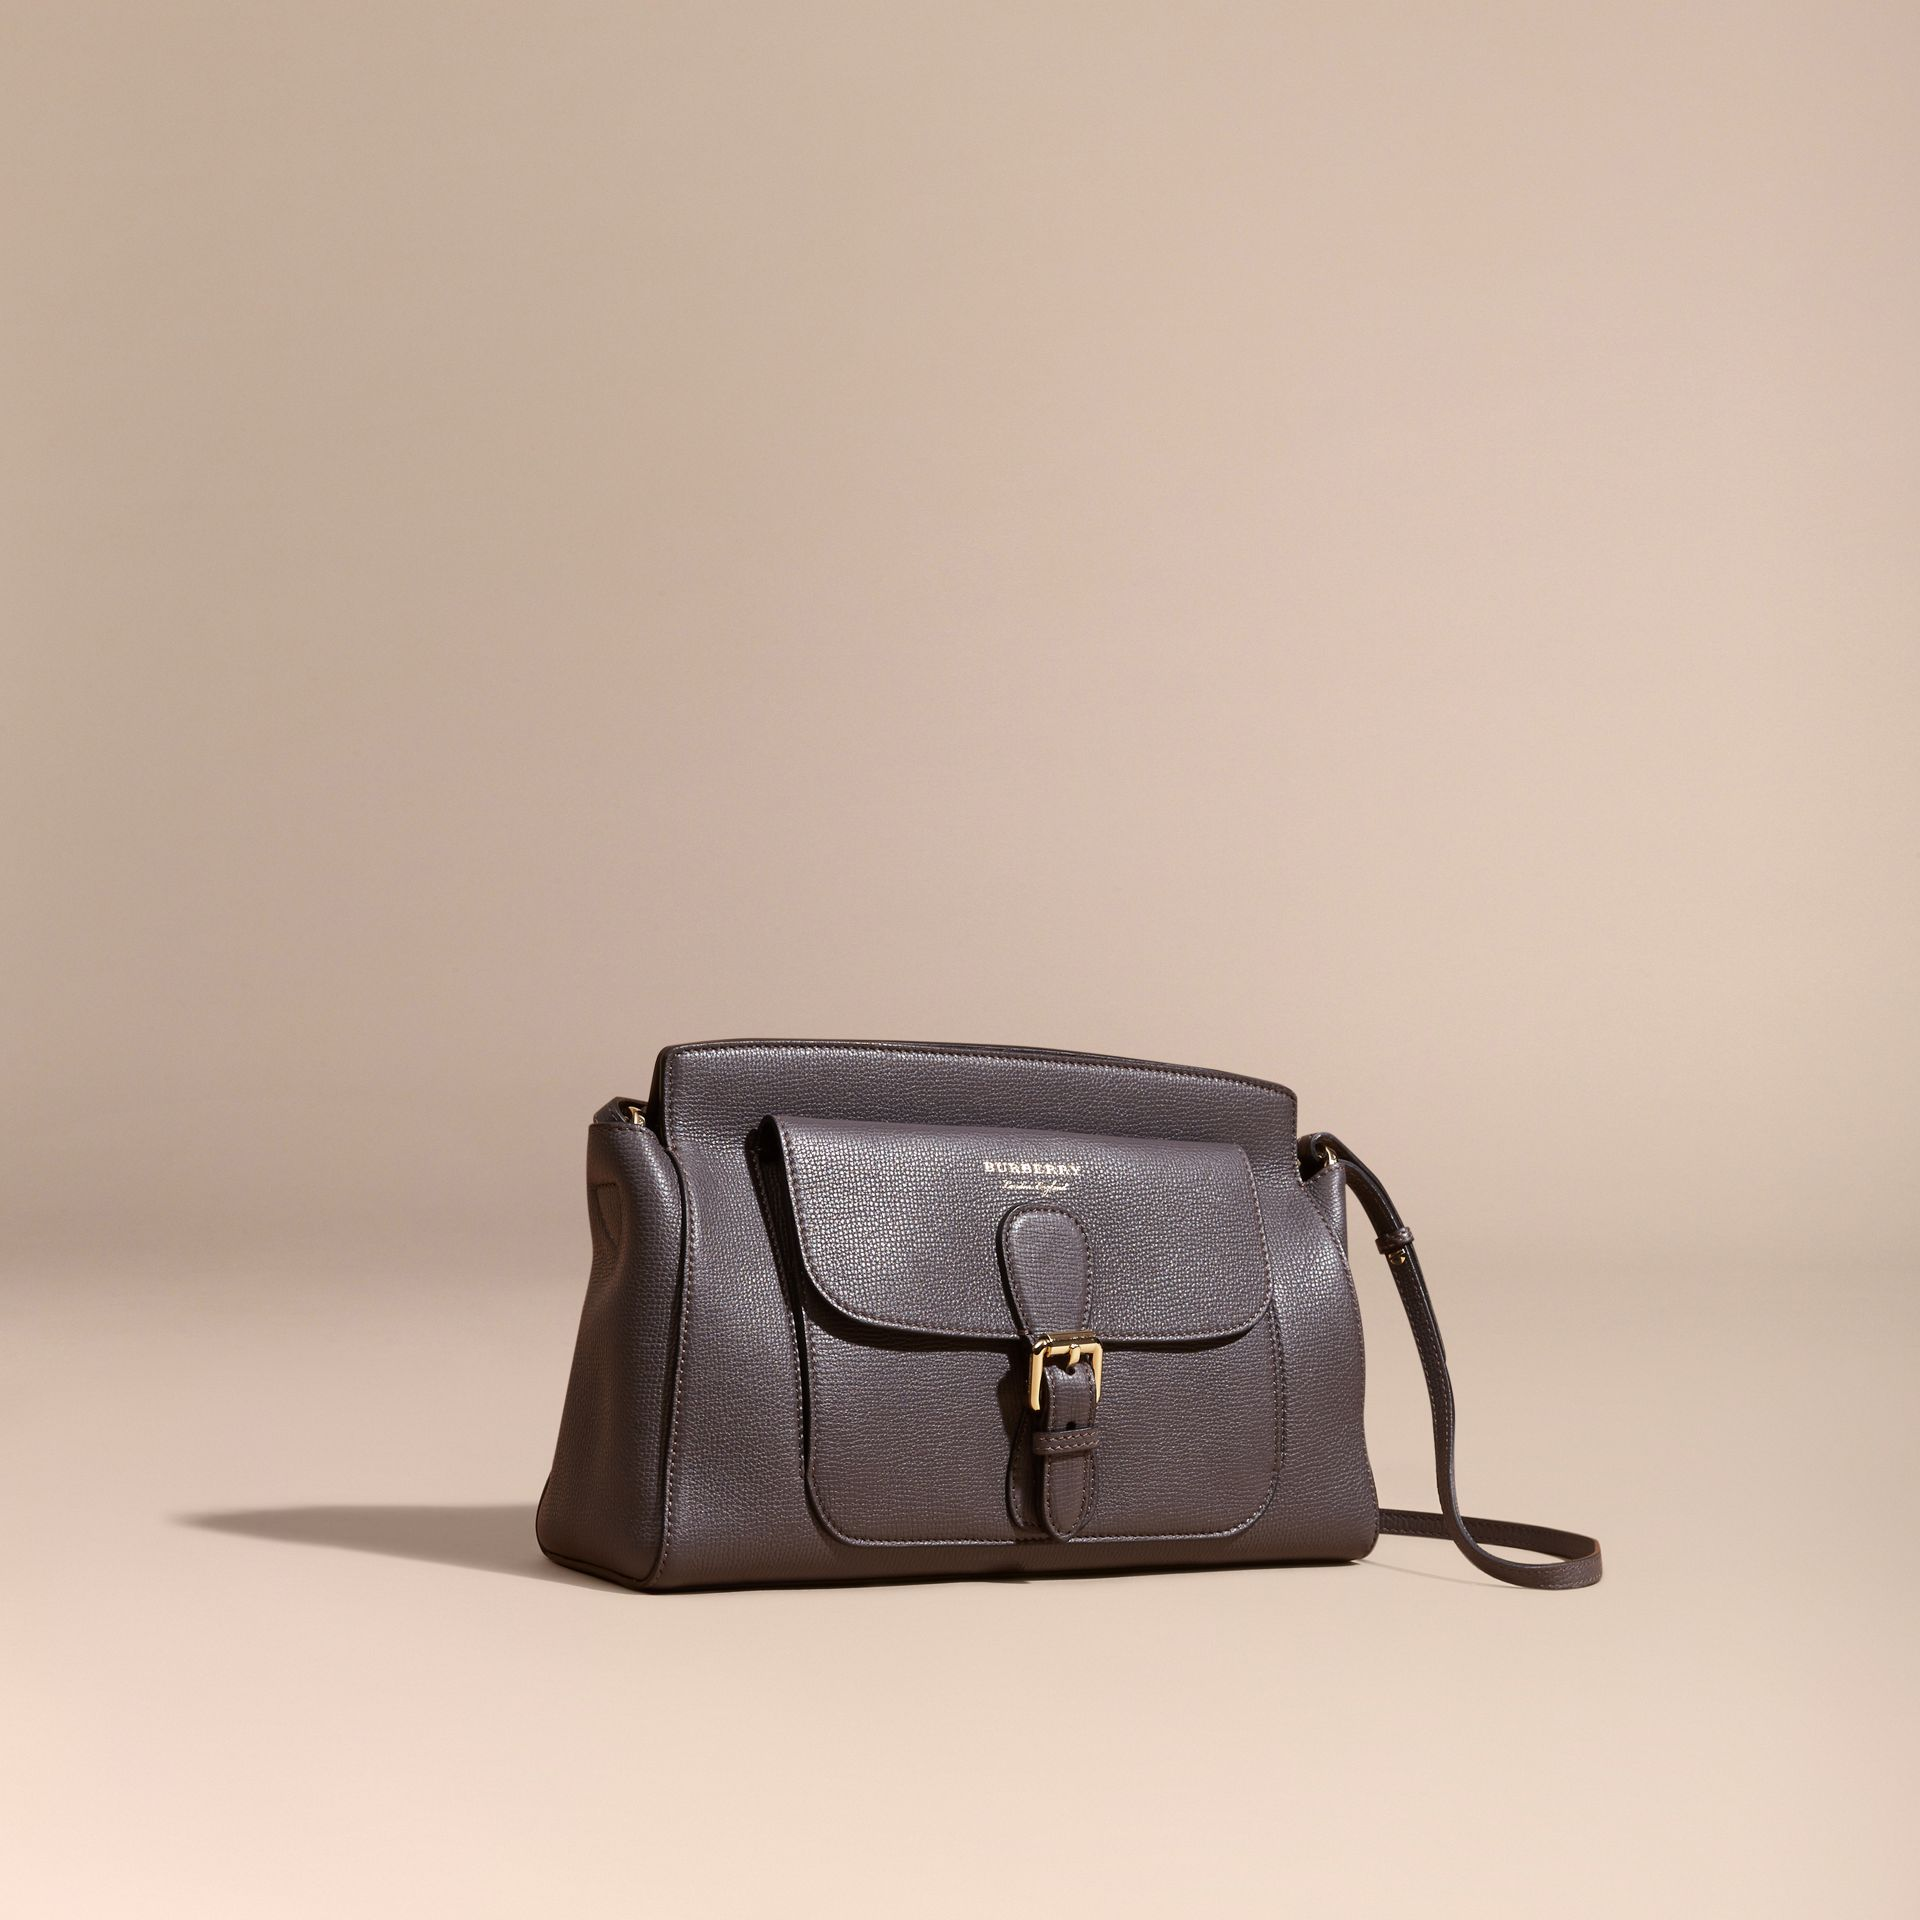 Sepia grey The Saddle Clutch in Grainy Bonded Leather Sepia Grey - gallery image 1